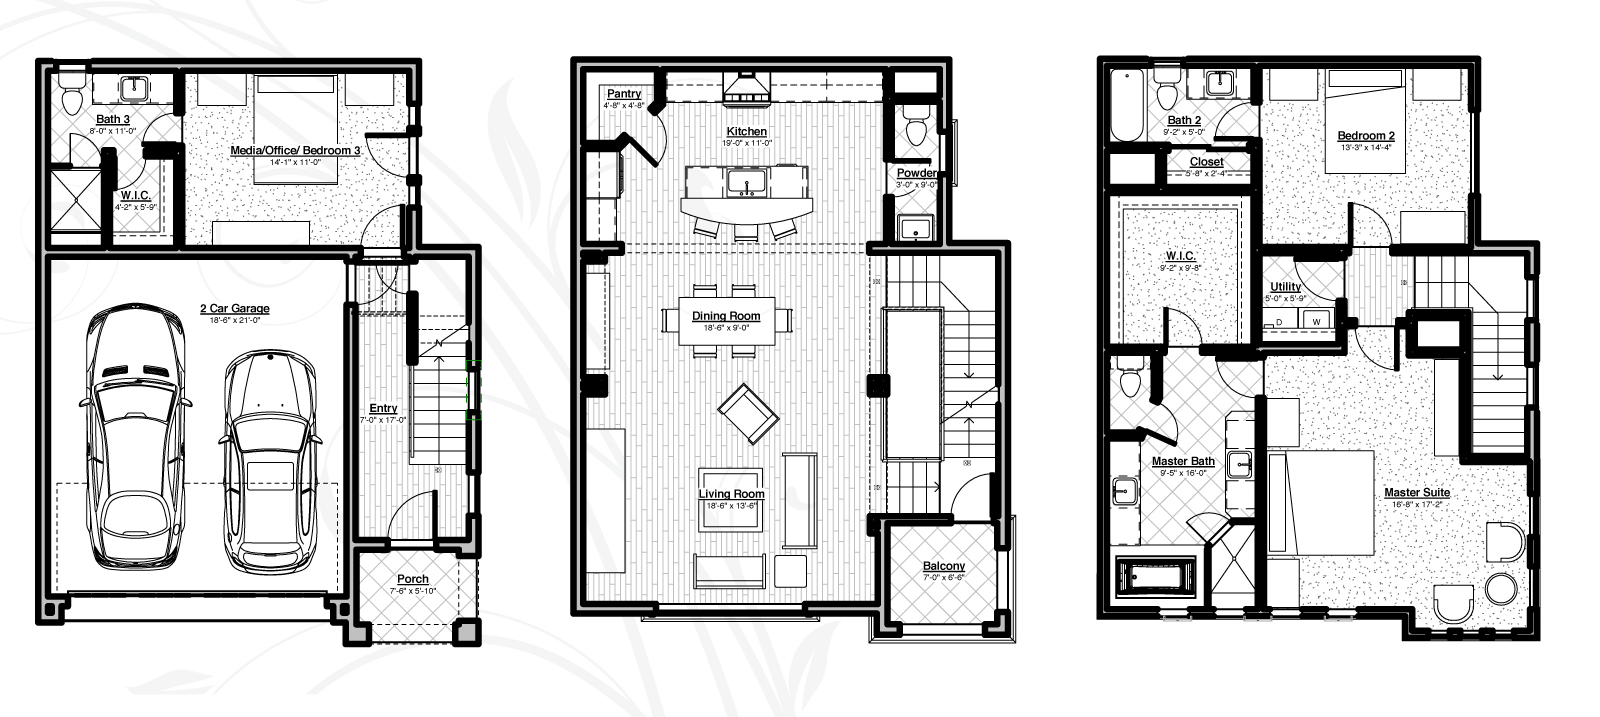 Stillman single family homes floorplan drake homes inc for Family house plans